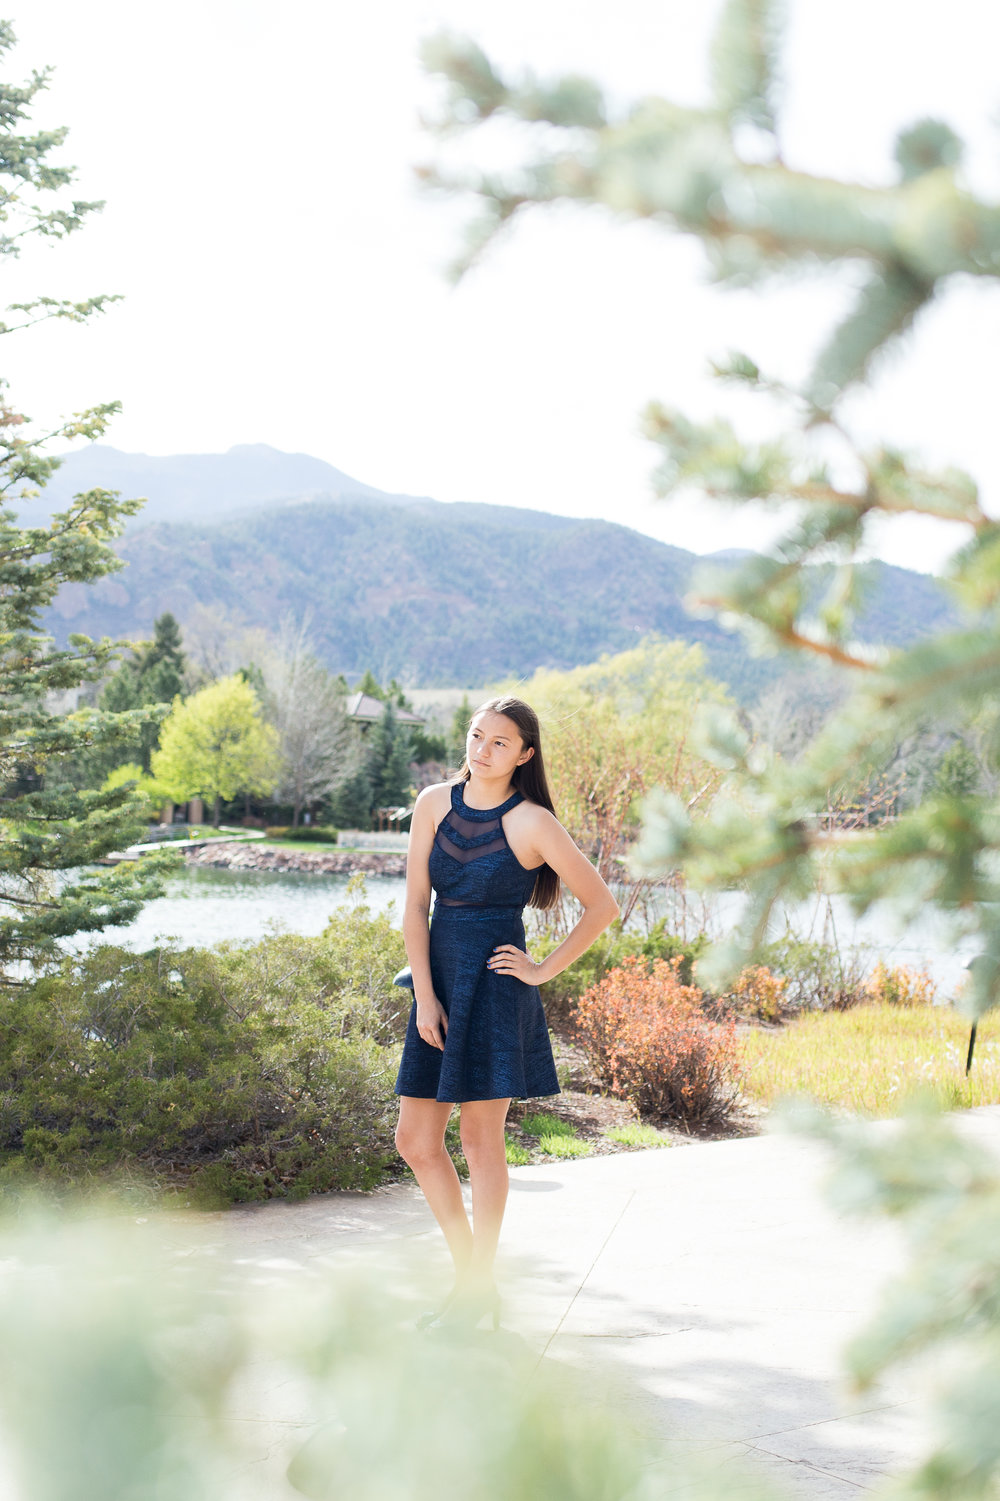 Colorado Springs Senior Portraits | Colorado Springs Senior Photography | The Broadmoor Senior Photography | Stacy Carosa Photography